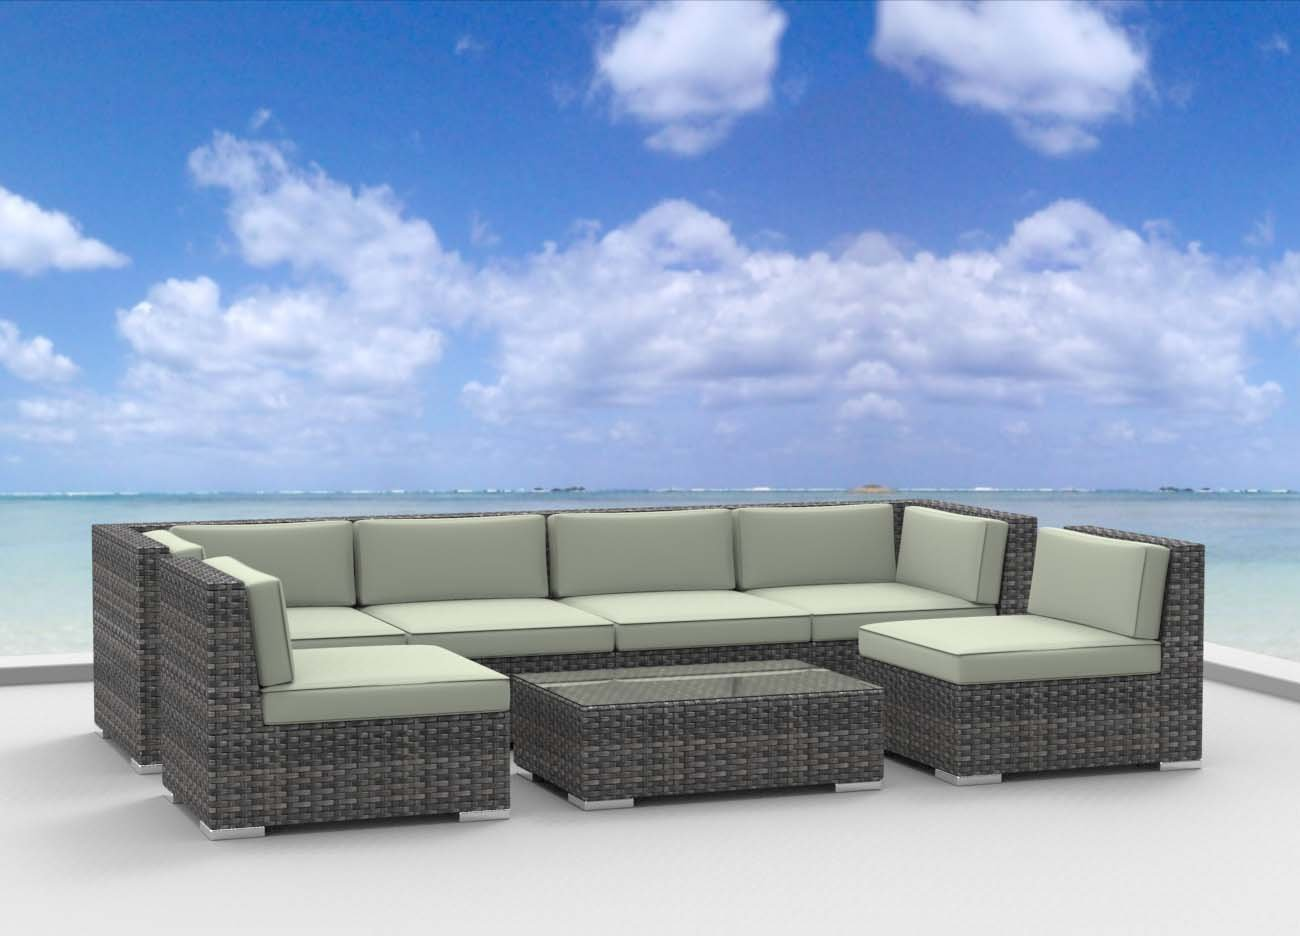 www.urbanfurnishing.net Urban Furnishing - OAHU 7pc Modern Outdoor Backyard Wicker Rattan Patio Furniture Sofa Sectional Couch Set - Beige at Sears.com